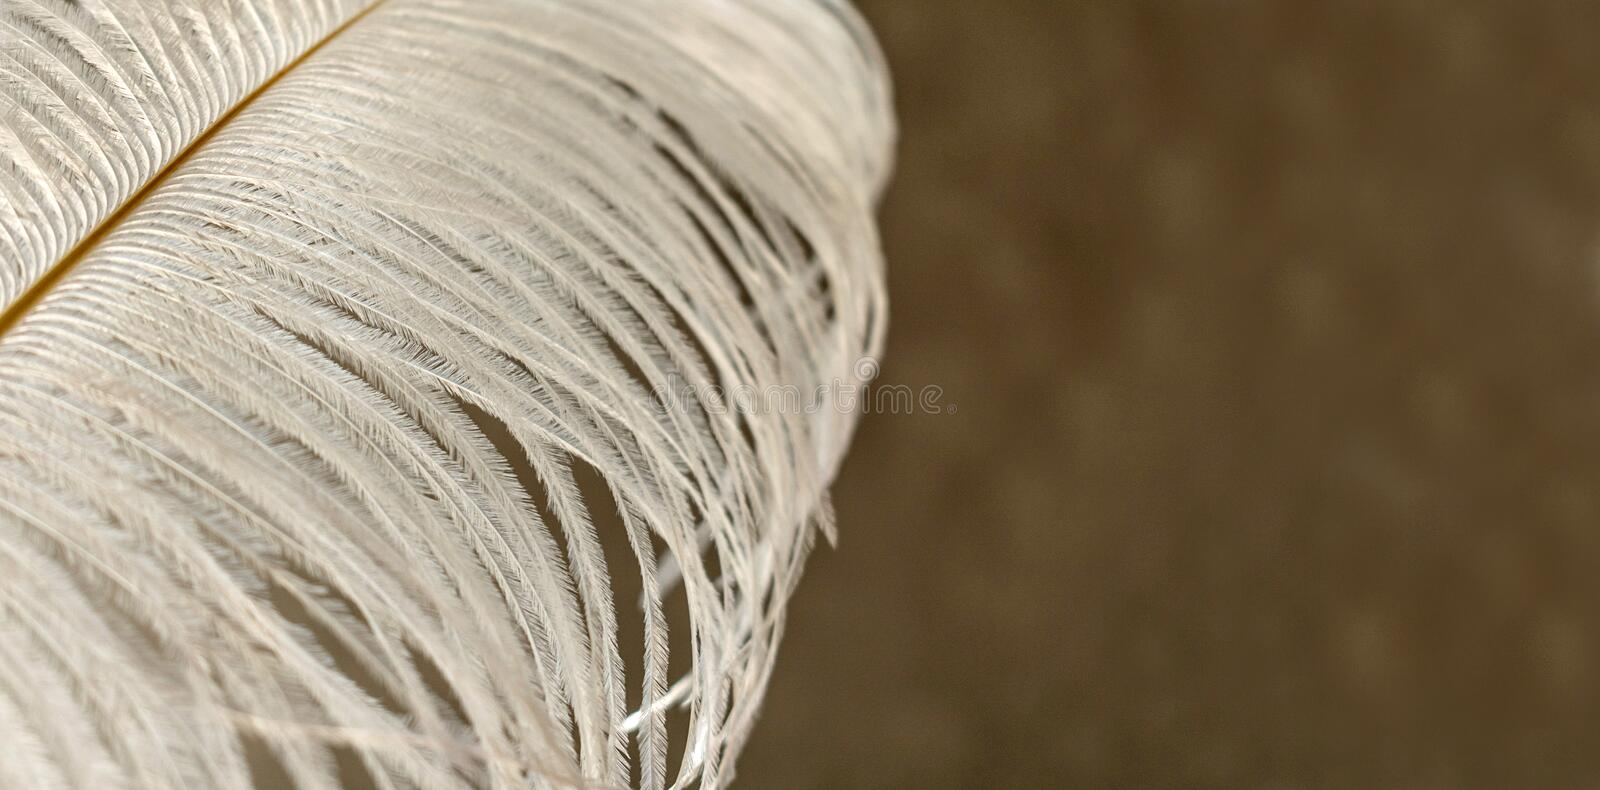 White ostrich feather close-up on a blurry background. Feather texture. Copy space. White ostrich feather close-up on a blurry background. Copy space royalty free stock photography